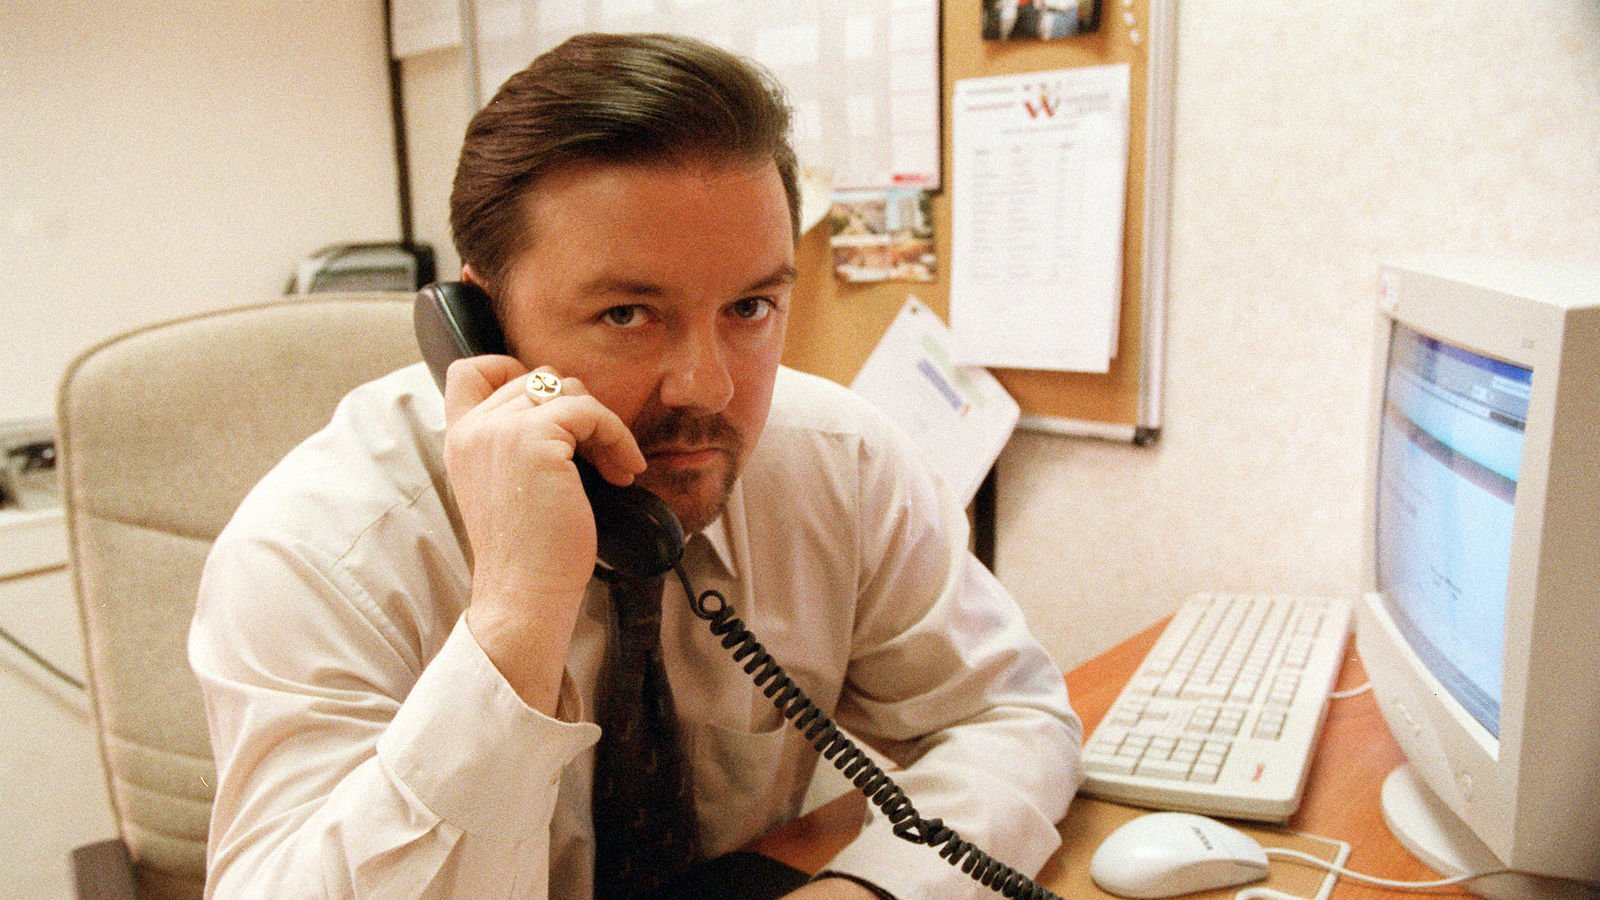 Ricky Gervais just shared this hilarously scathing first review of The Office